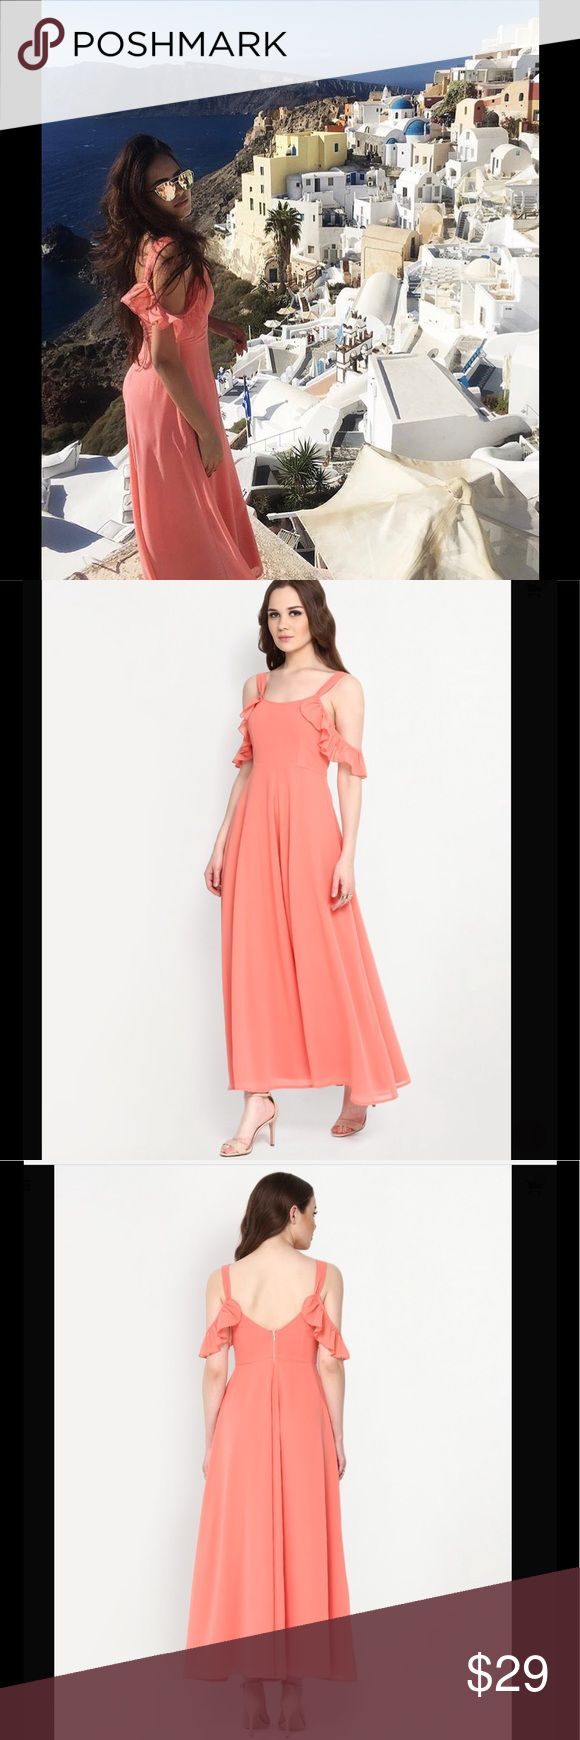 NEW Beautiful coral maxi : UK 8 Pretty peach/coral maxi, perfect for holidays or weddings! NEW & UNWORN. Size : UK 8 Dresses Maxi